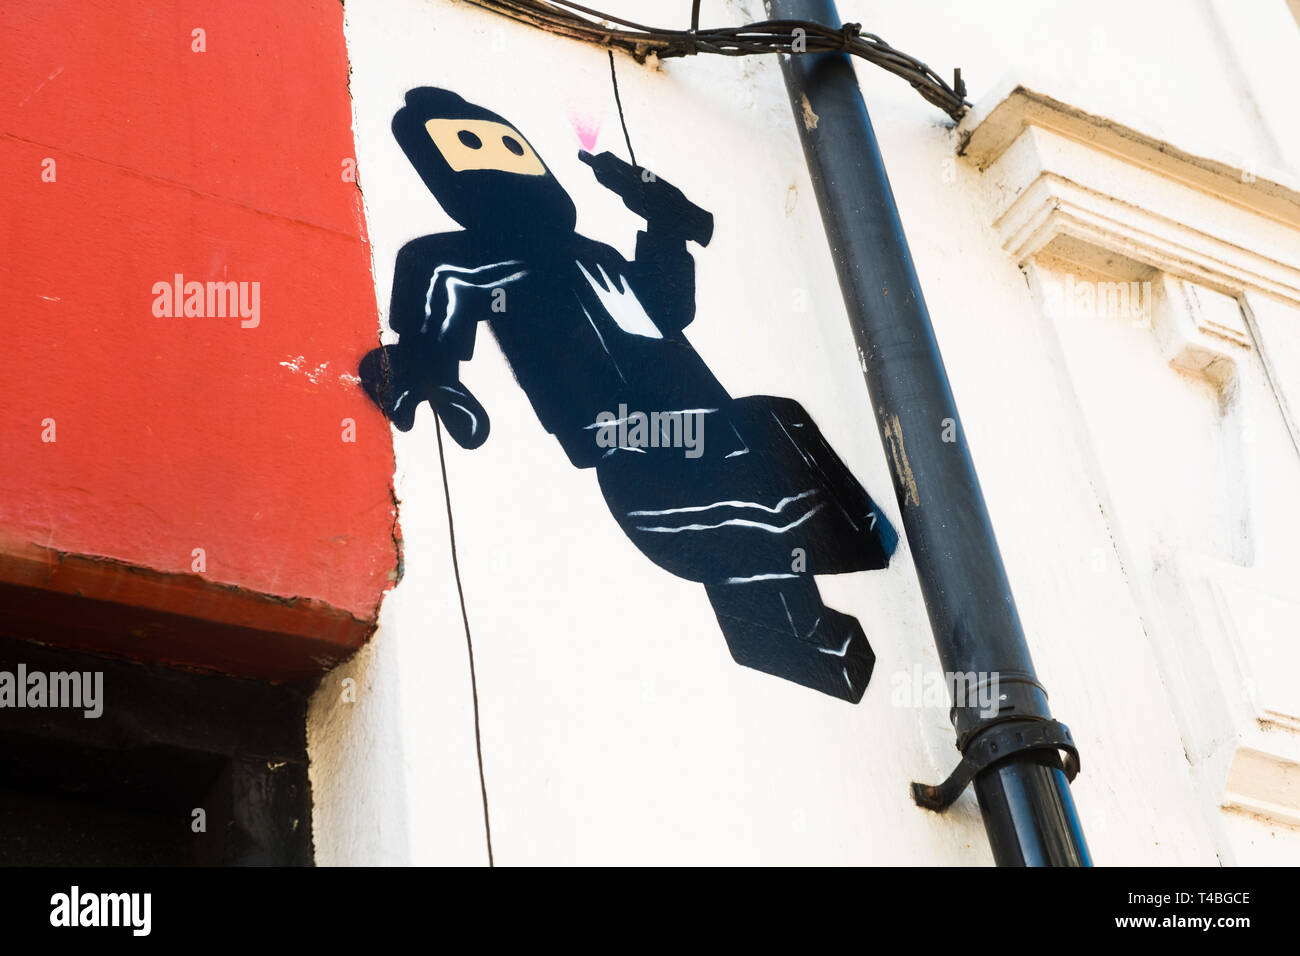 Graffiti by James Ame - Ame72 (The `Lego Guy)  -  on a wall in Aberystwyth showing a black  suited 'ninja' character apparently  falling off a drainpipe holding a can of spray paint after painting a pink heart on the wall. March 10 2019 - Stock Image